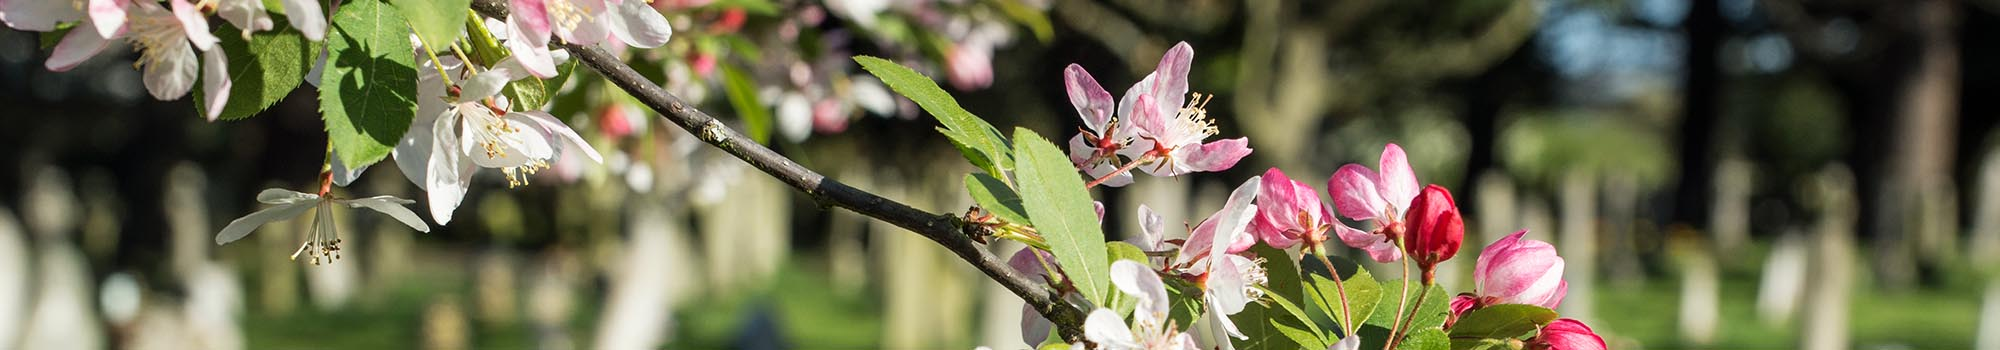 Blossom on tree in cemetery grounds